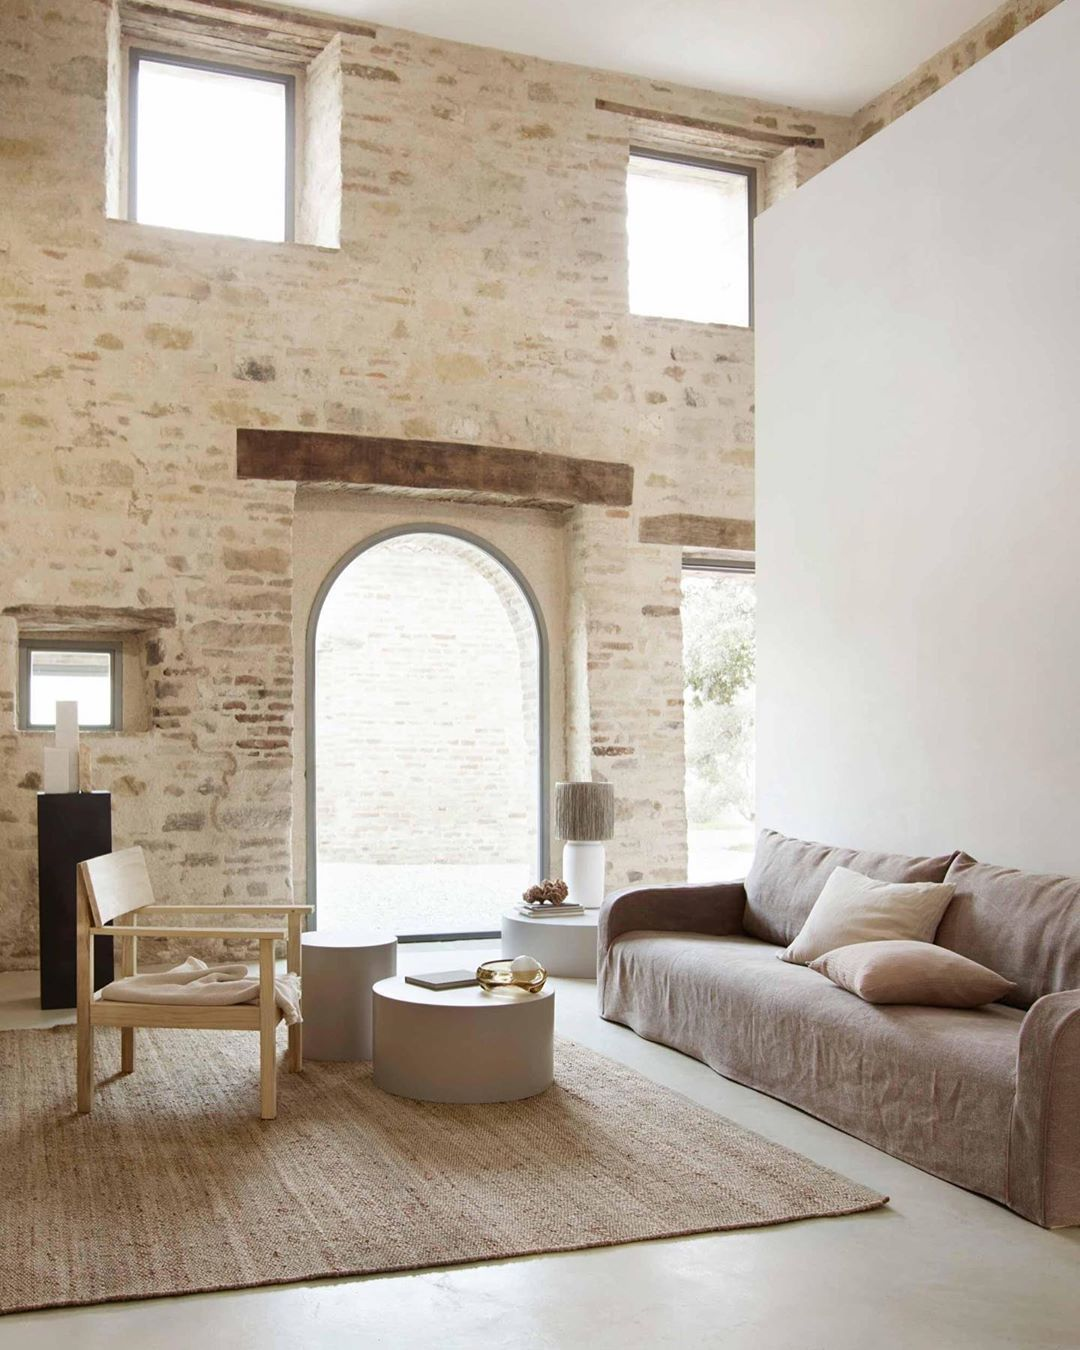 Design Live On Instagram Casa Olivi For Tine K Home Designed By Markus Wespi And Jerome De Meuron In Le Marche Tinekhomestore Rustic House Home House Design